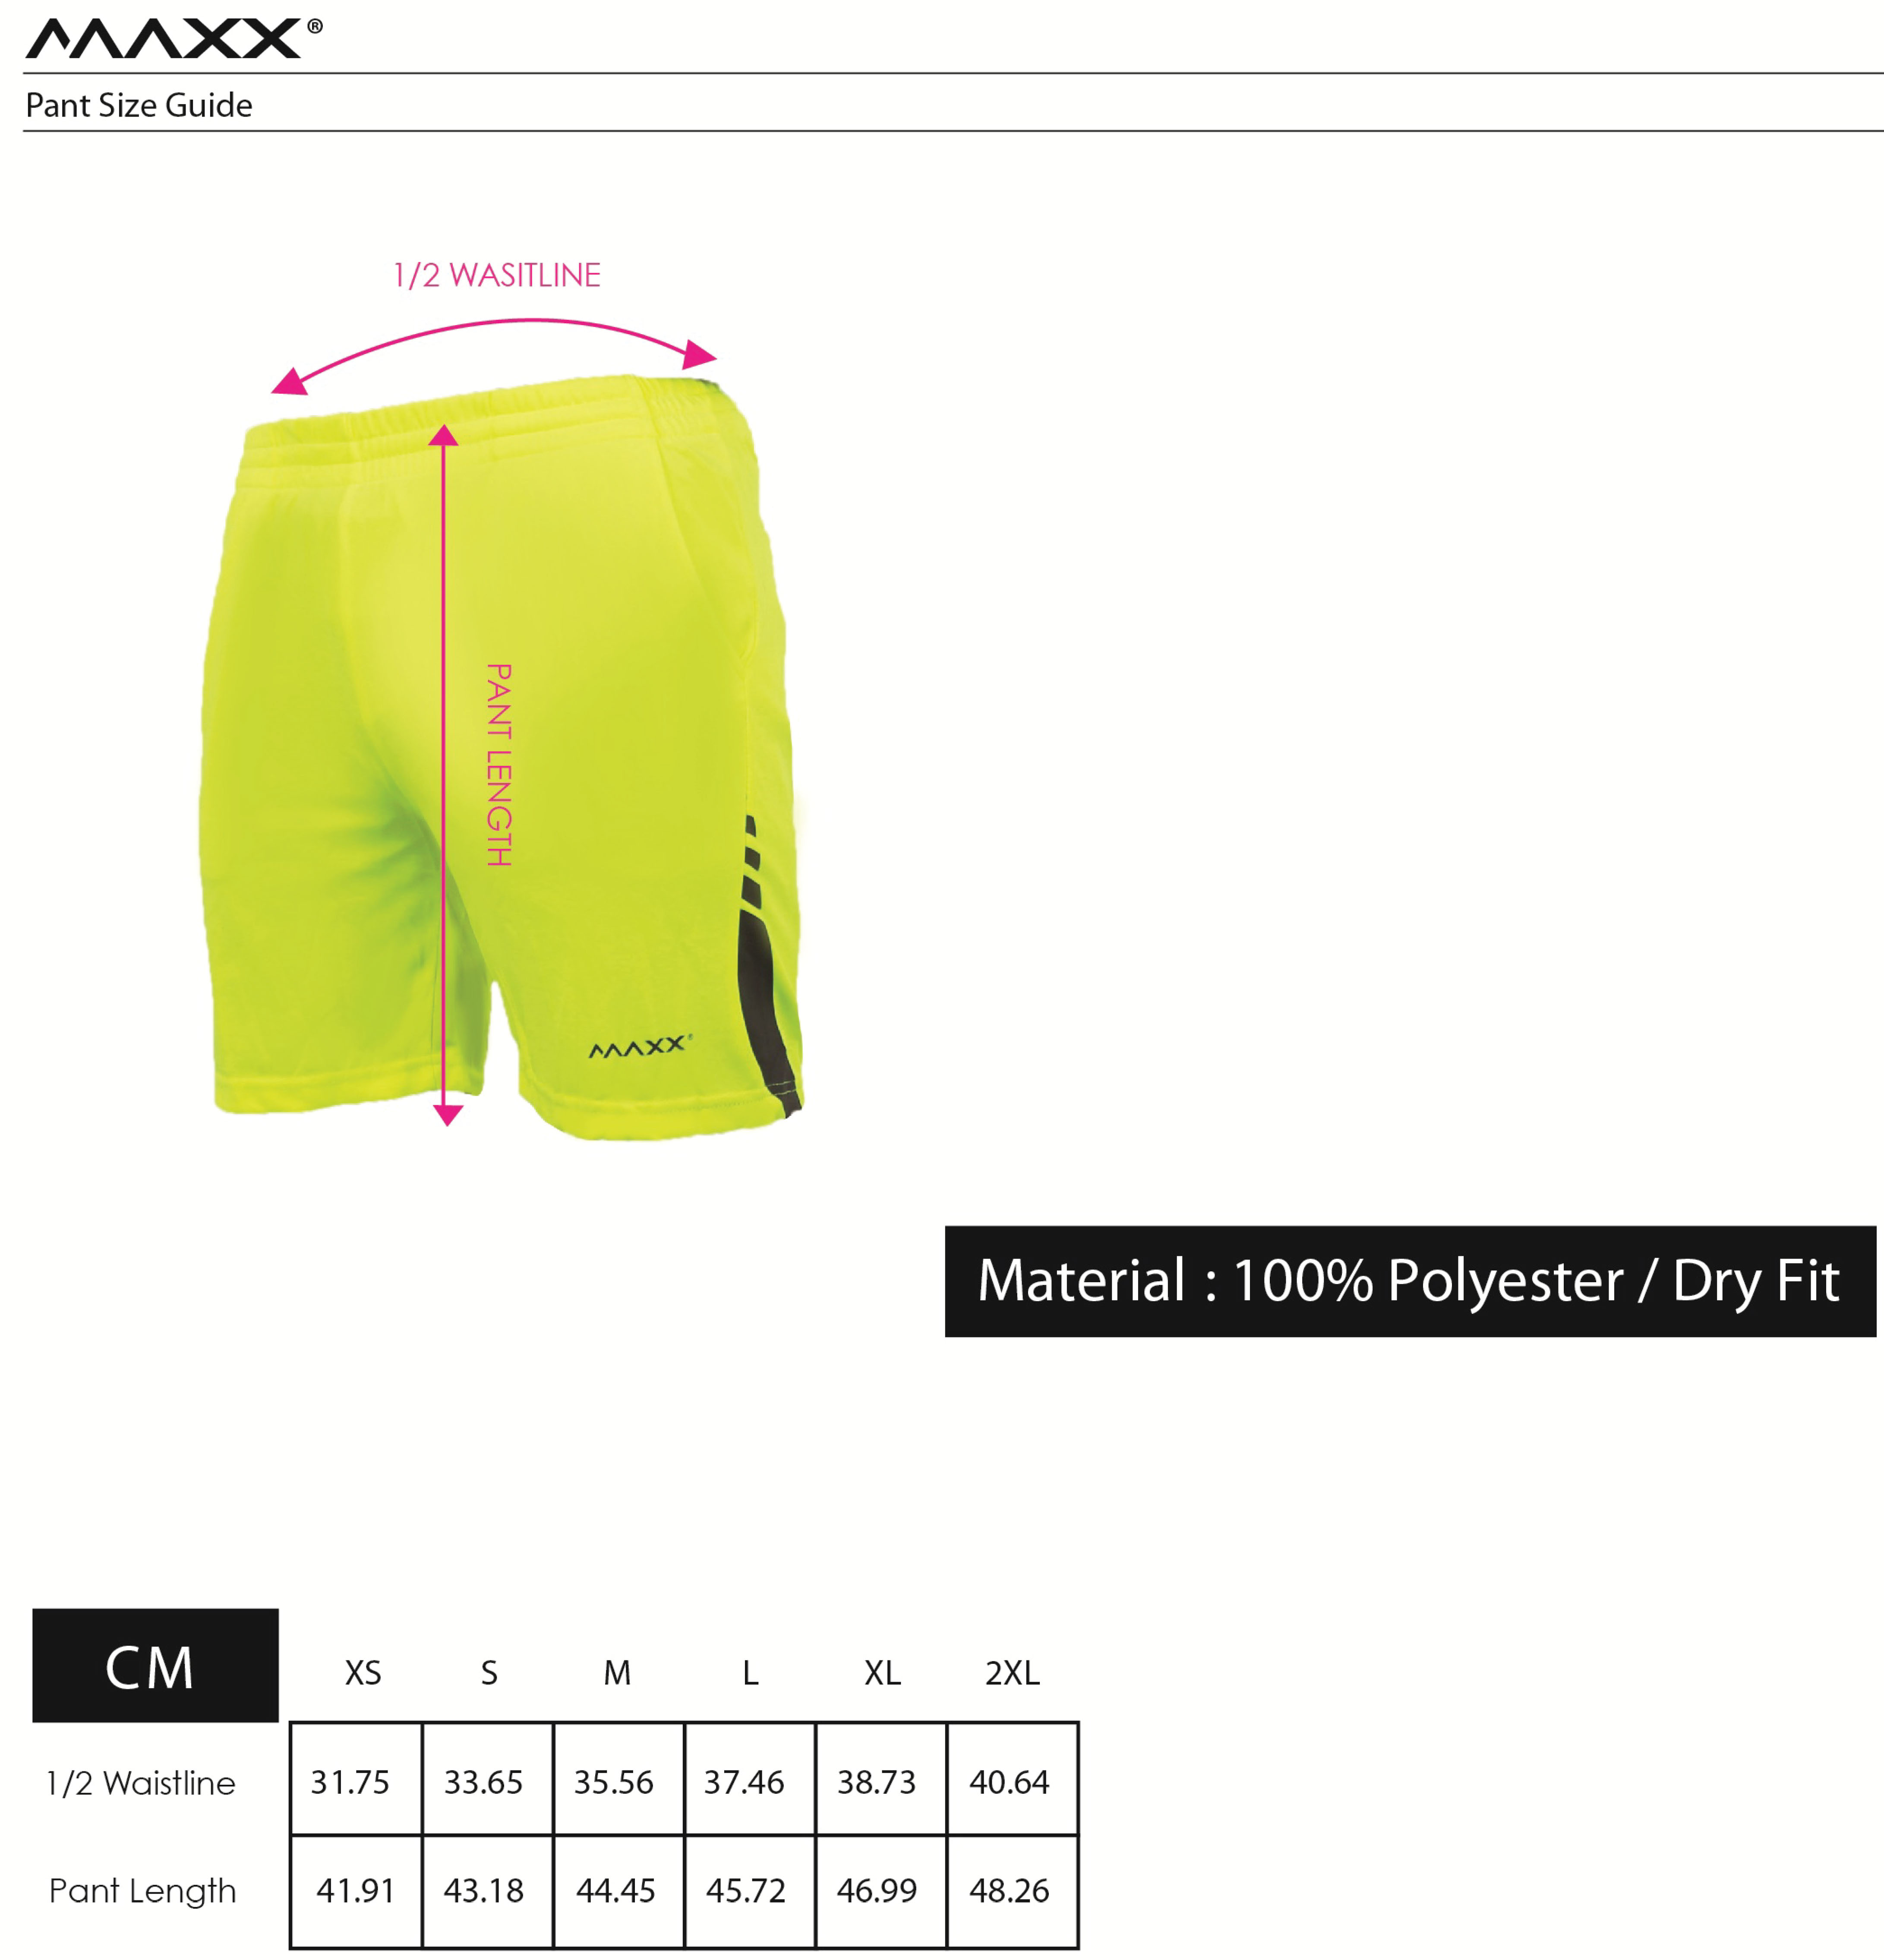 MAXX Pant Size Guide